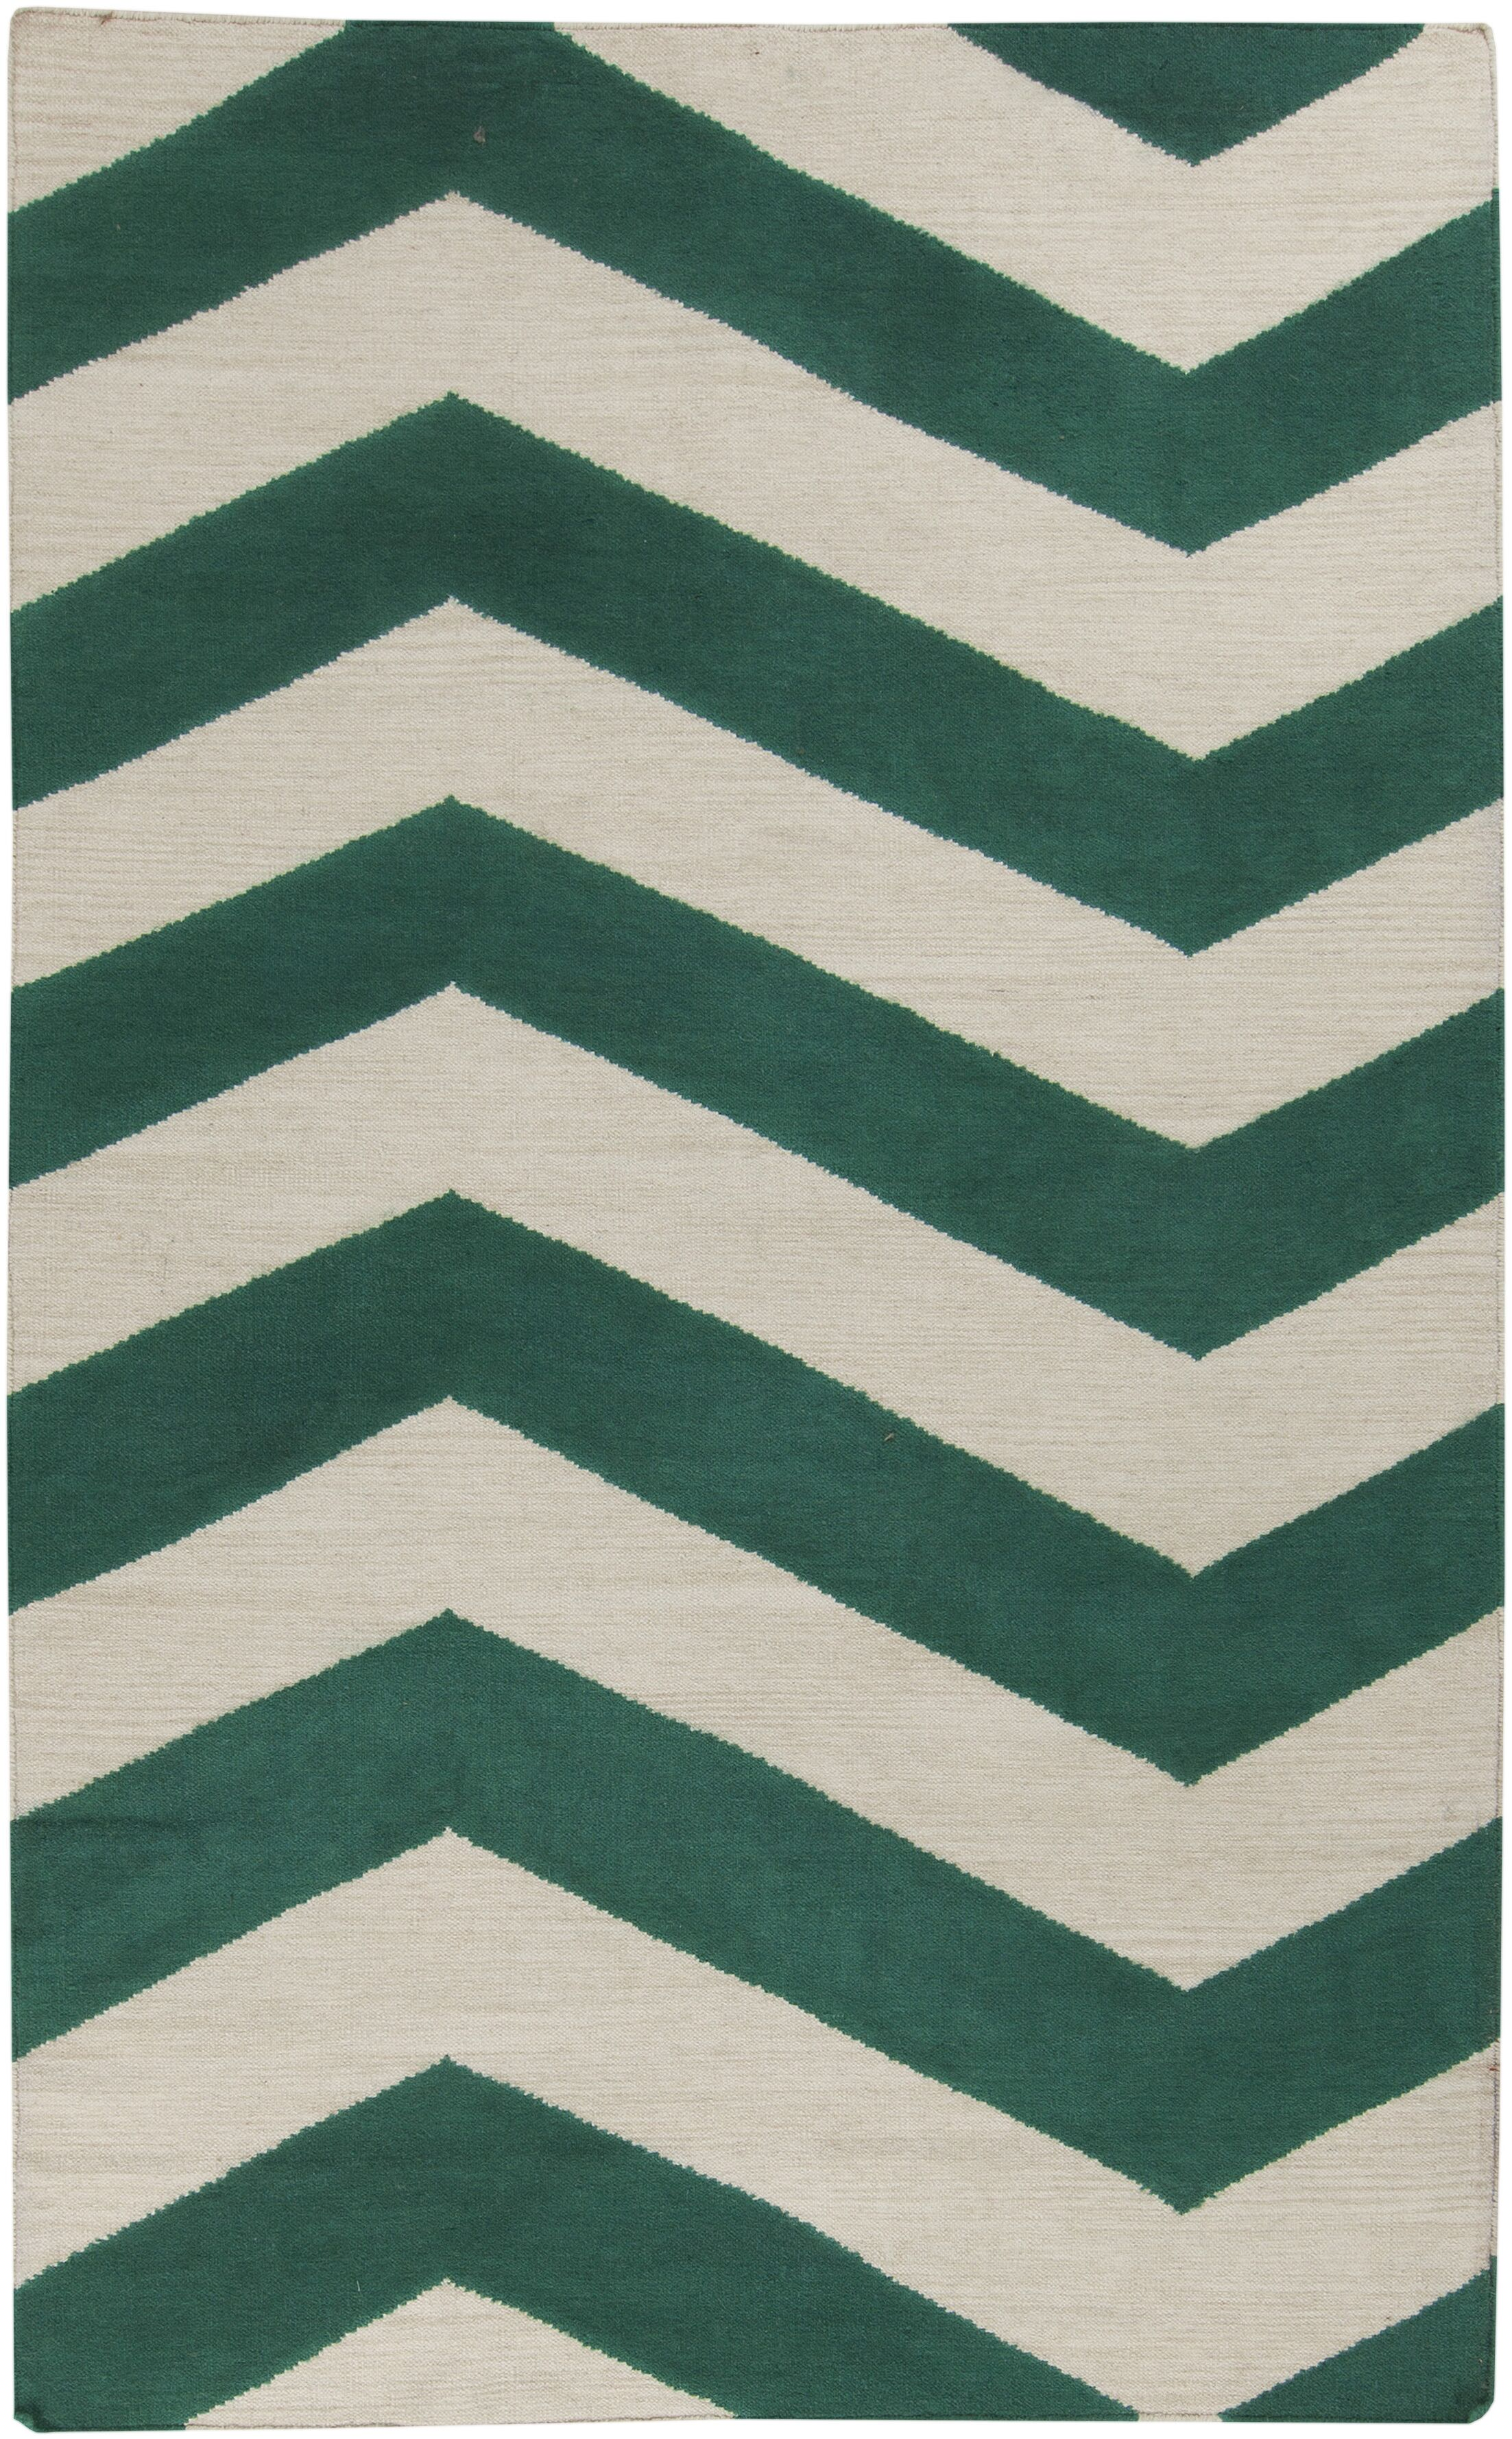 Lowery Juniper & Antique White Zig Zag Area Rug Rug Size: Rectangle 5' x 8'